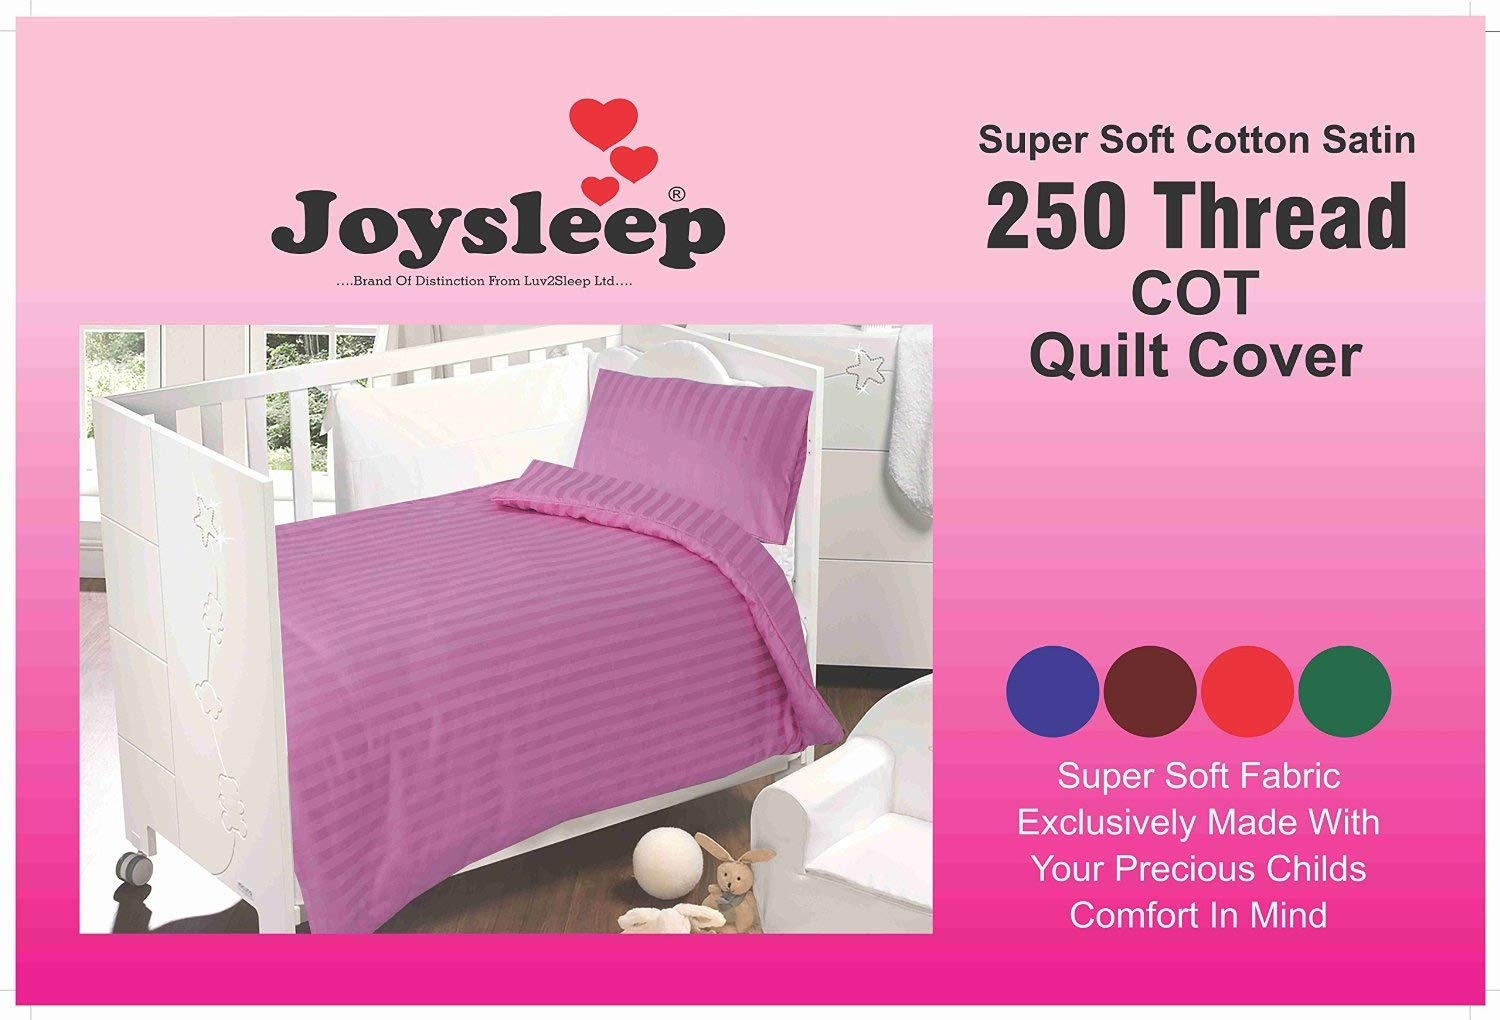 Love2Sleep ULTIMATE LUXURY 250 TC COTTON SATIN COT BED DUVET COVER & PILLOWCASE SET SATIN STRIPE PINK